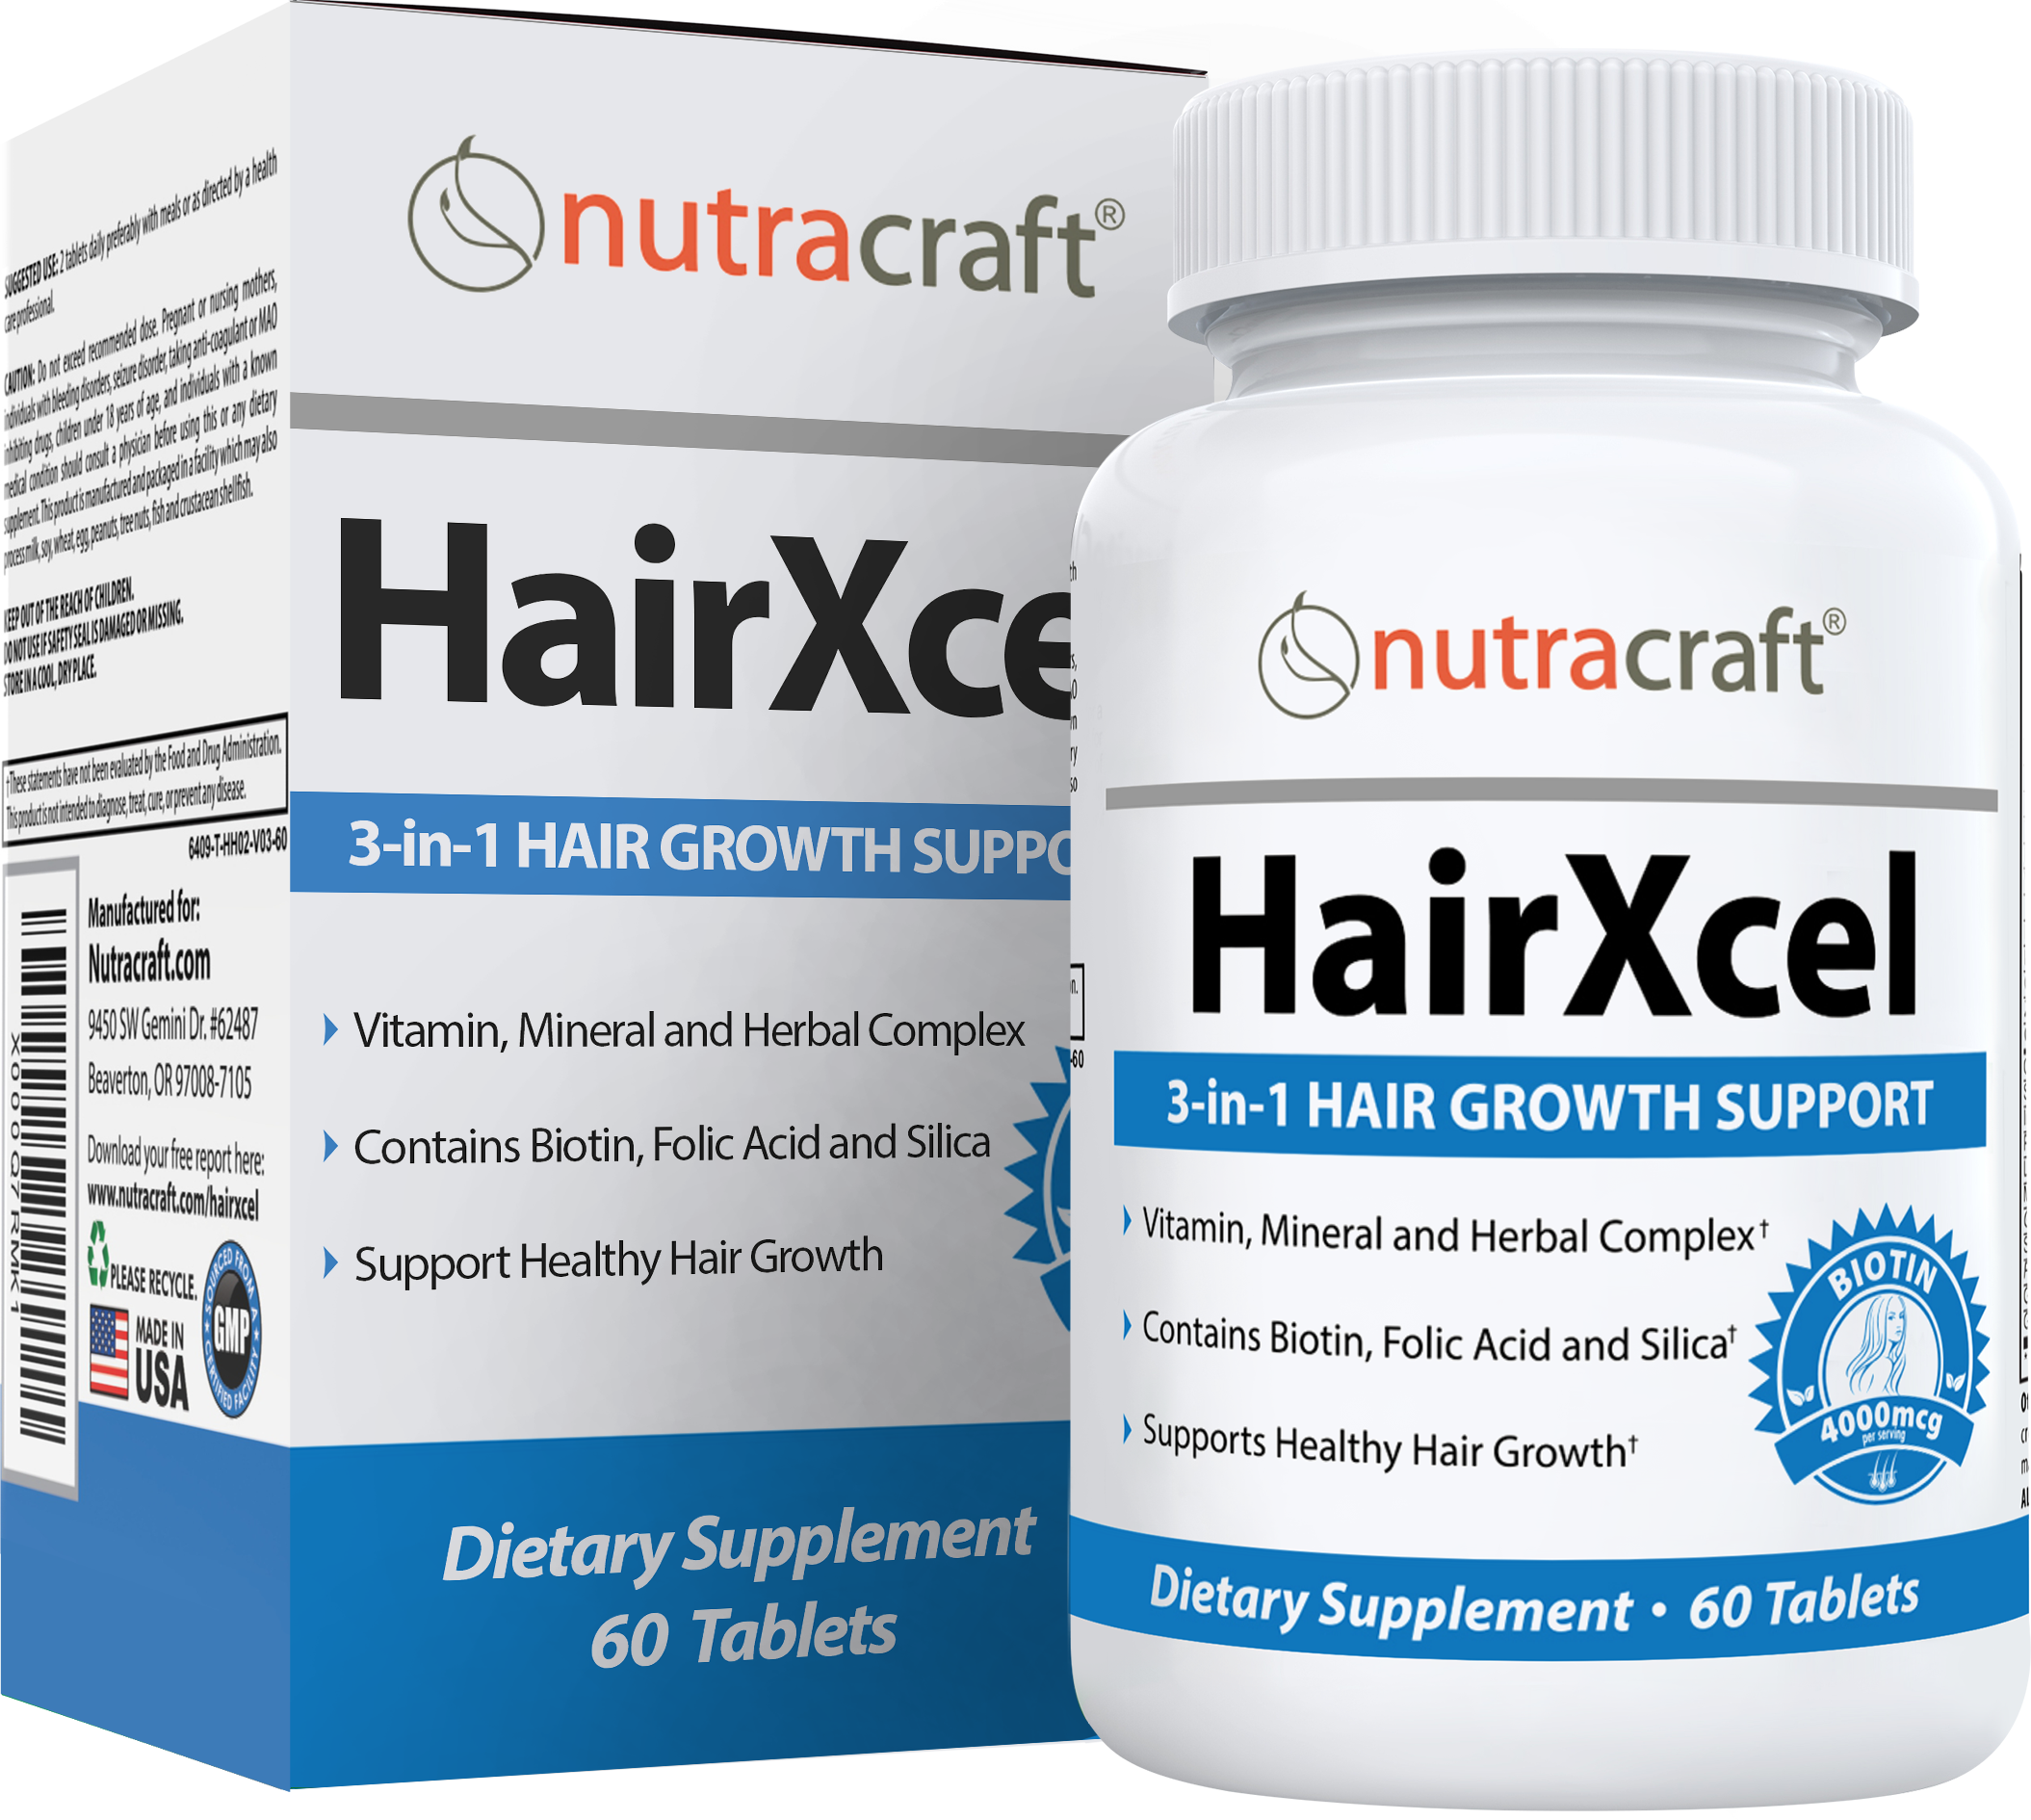 nutracraft-hairxcel-bottle-front